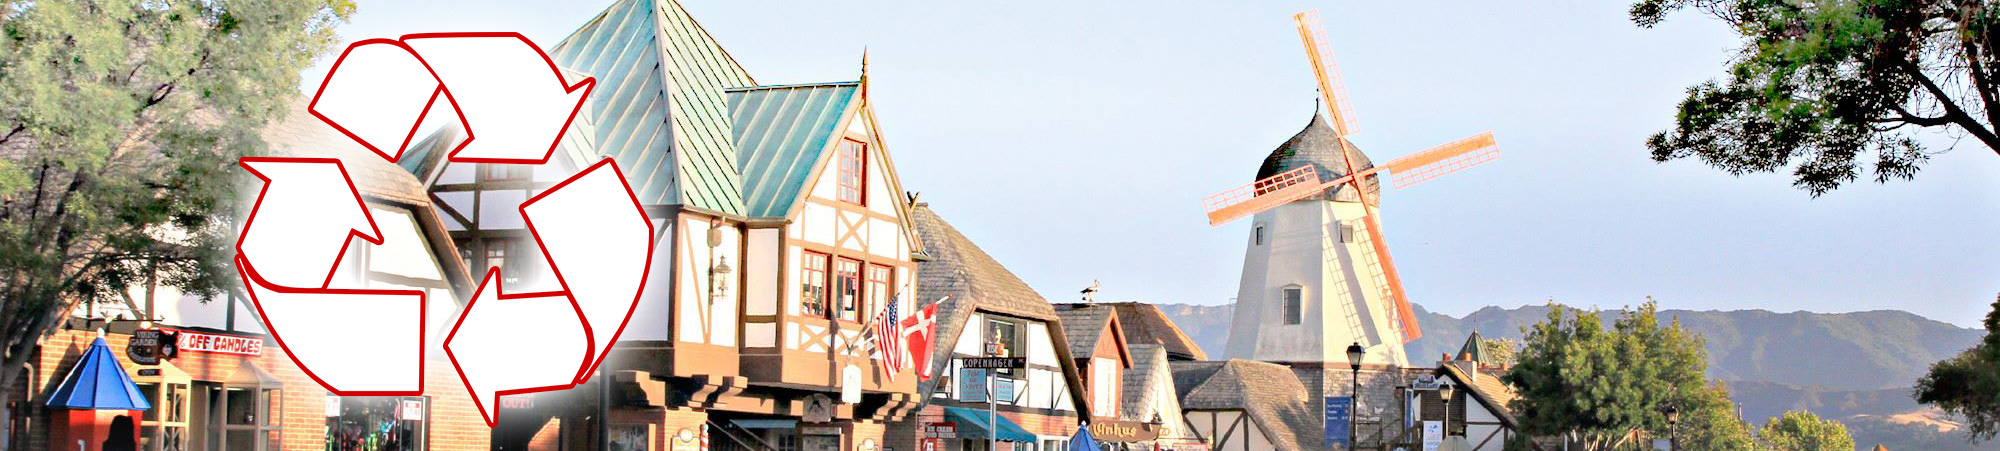 Solvang Green and Energy Efficient